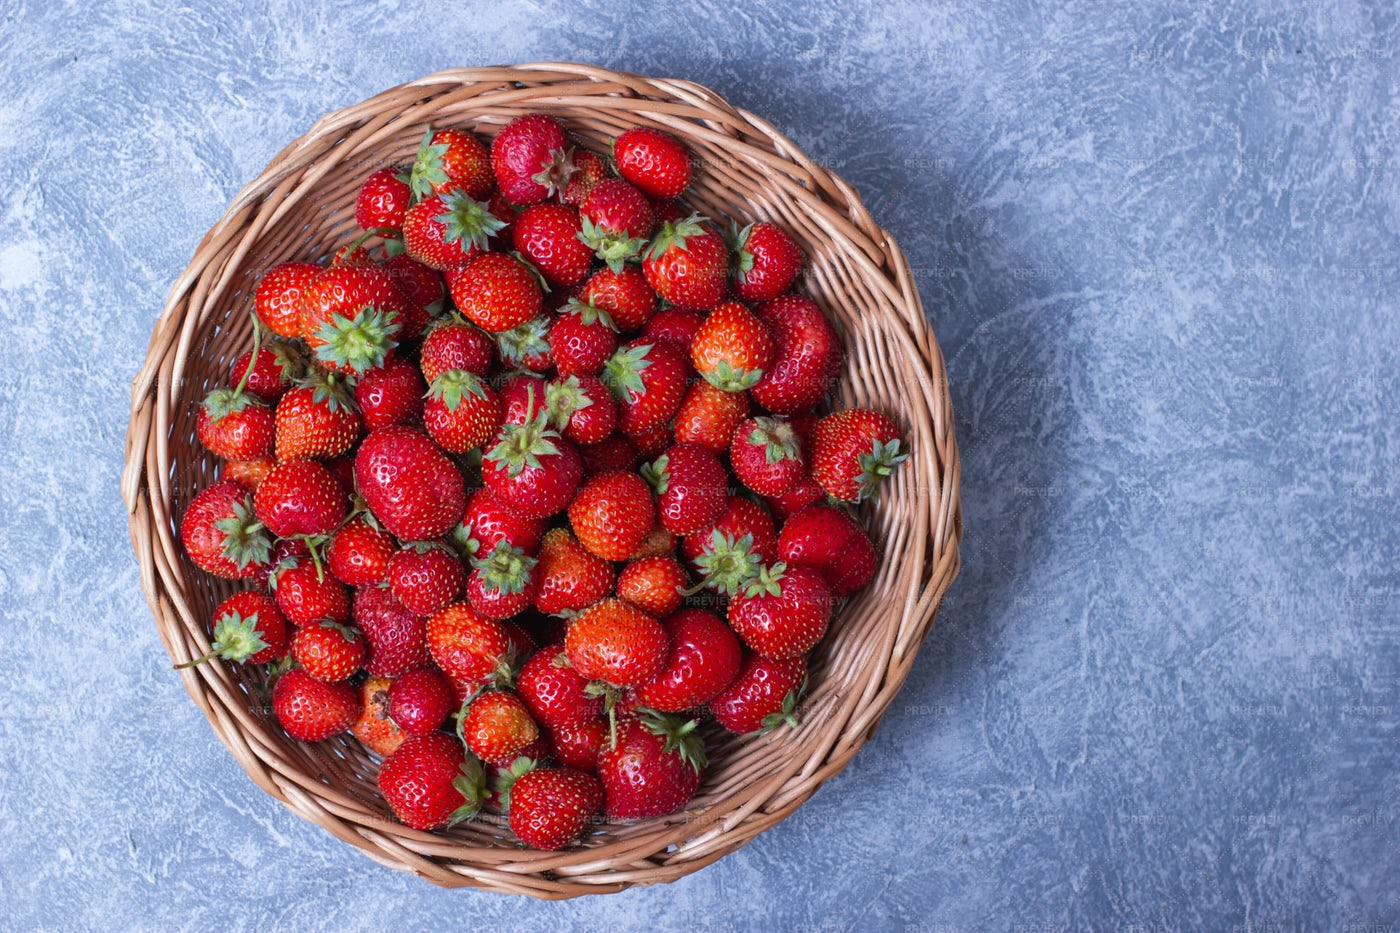 Strawberries In Wicker Plate: Stock Photos